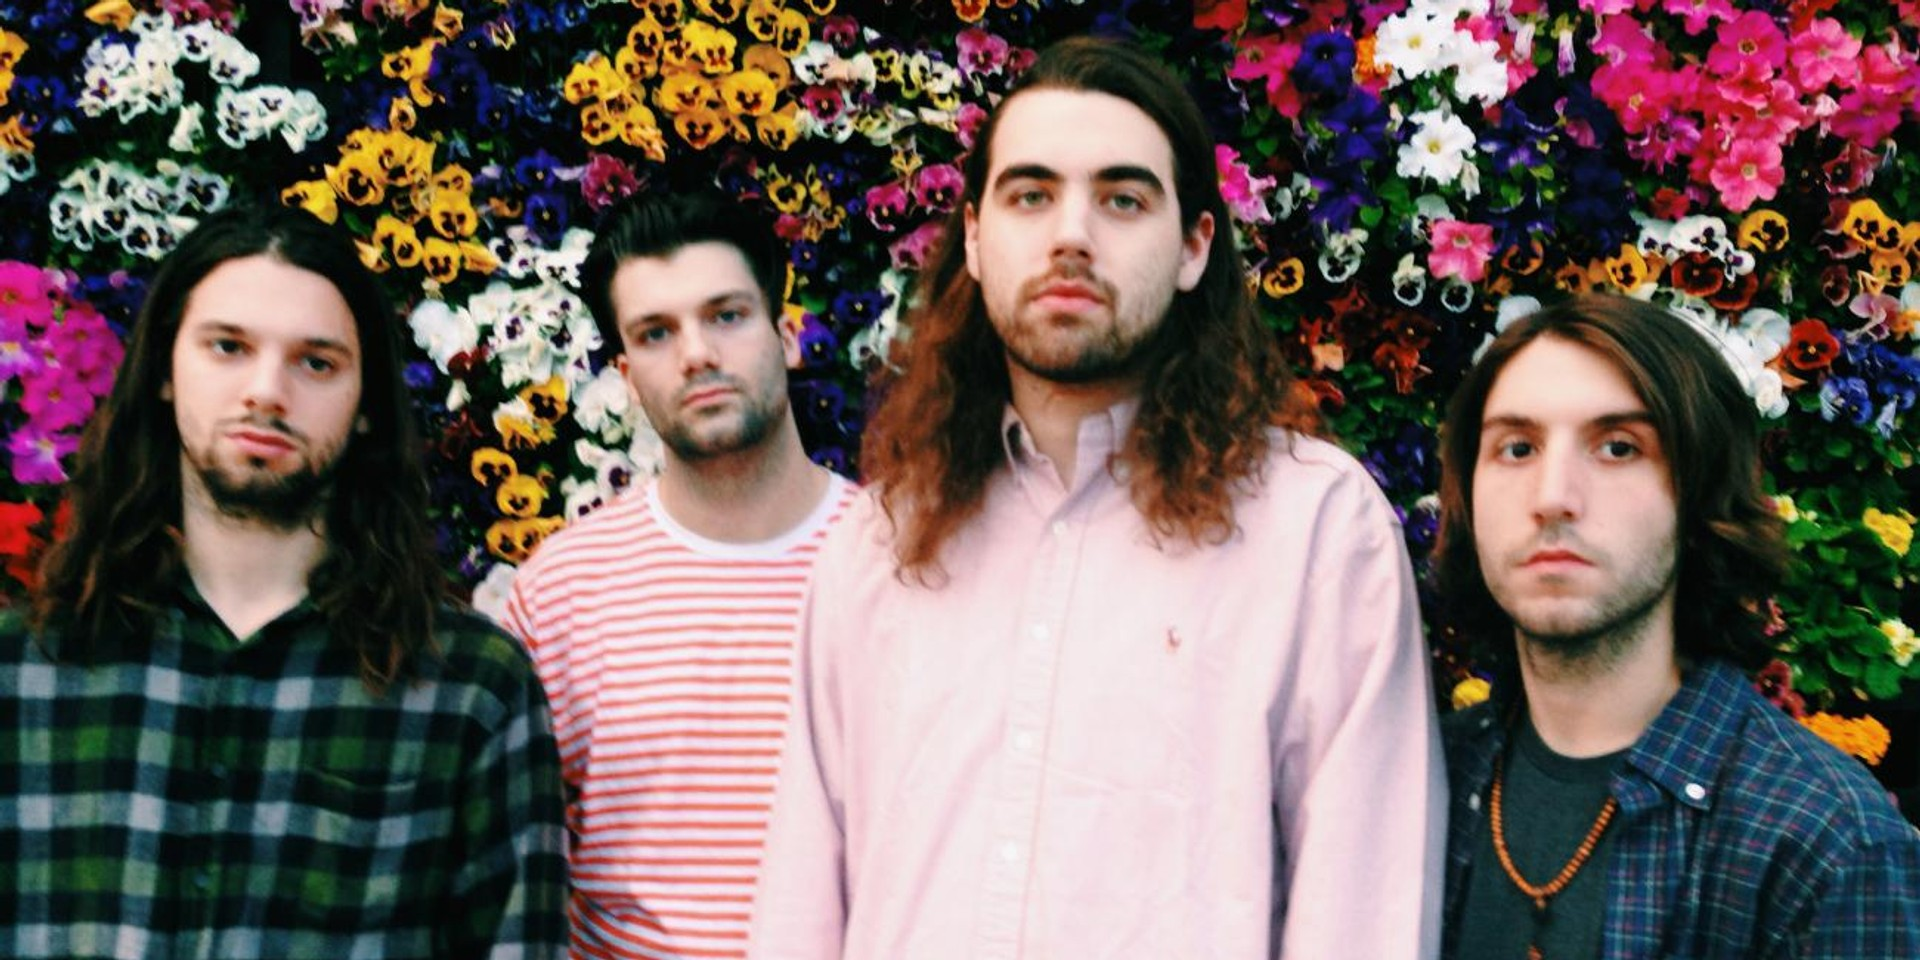 Turnover will be heading to Southeast Asia this year